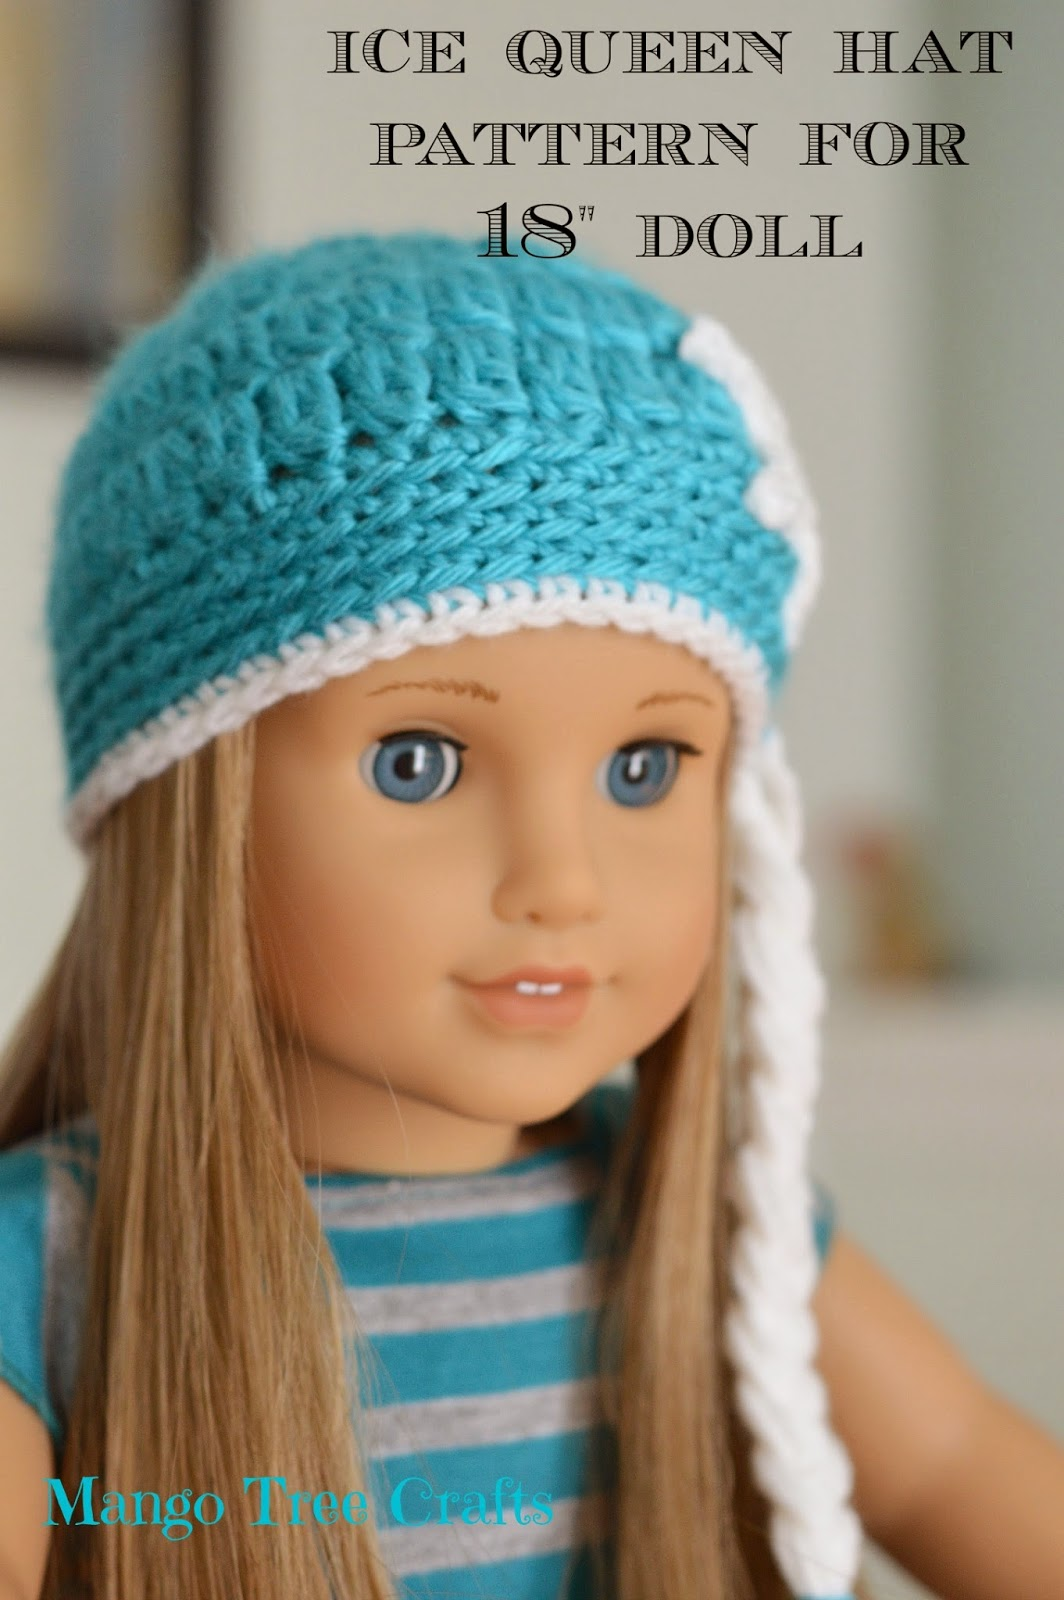 Mango Tree Crafts: Ice Queen Crochet Hat Pattern for 18 ...